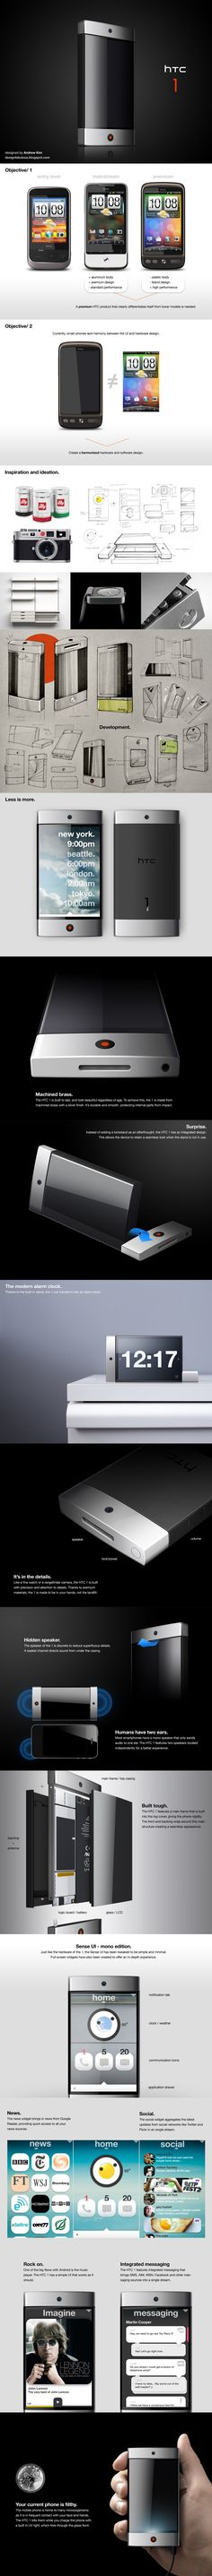 Product Design - Telephone - HTC